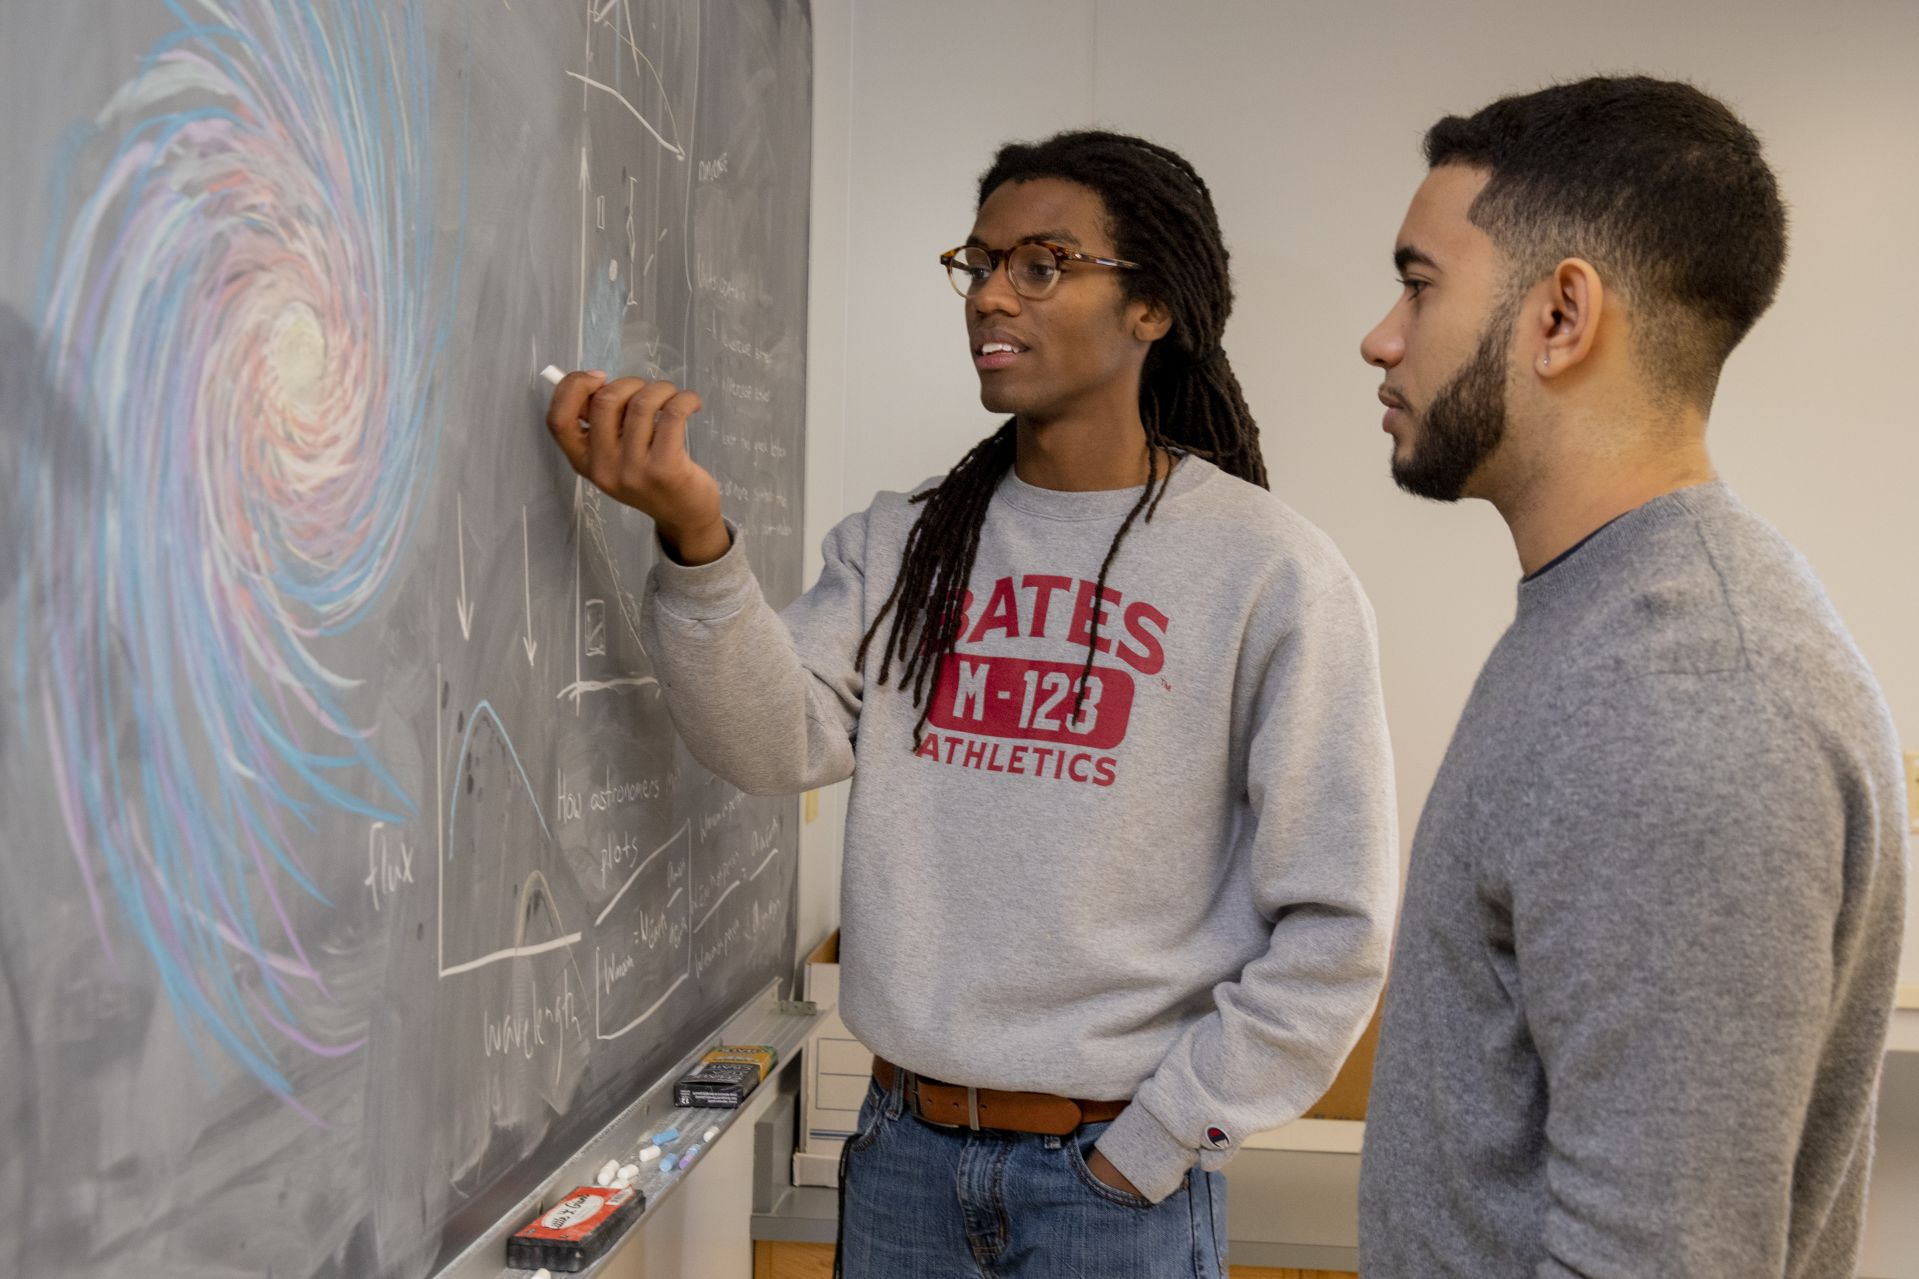 Physics students Kingdell S. Valdez '19 of Andover, Mass. (gray sweater) and Cristopher Thompson '19 of Macon, Ga., (Bates track sweatshirt) pose for photographs and discuss a physics problem at the blackboard in third-floor Carnegie Science physics lab on March 7, 2019.They are working on a collaborative physics senior project, doing different aspects w/similar data, turning in separate documents.